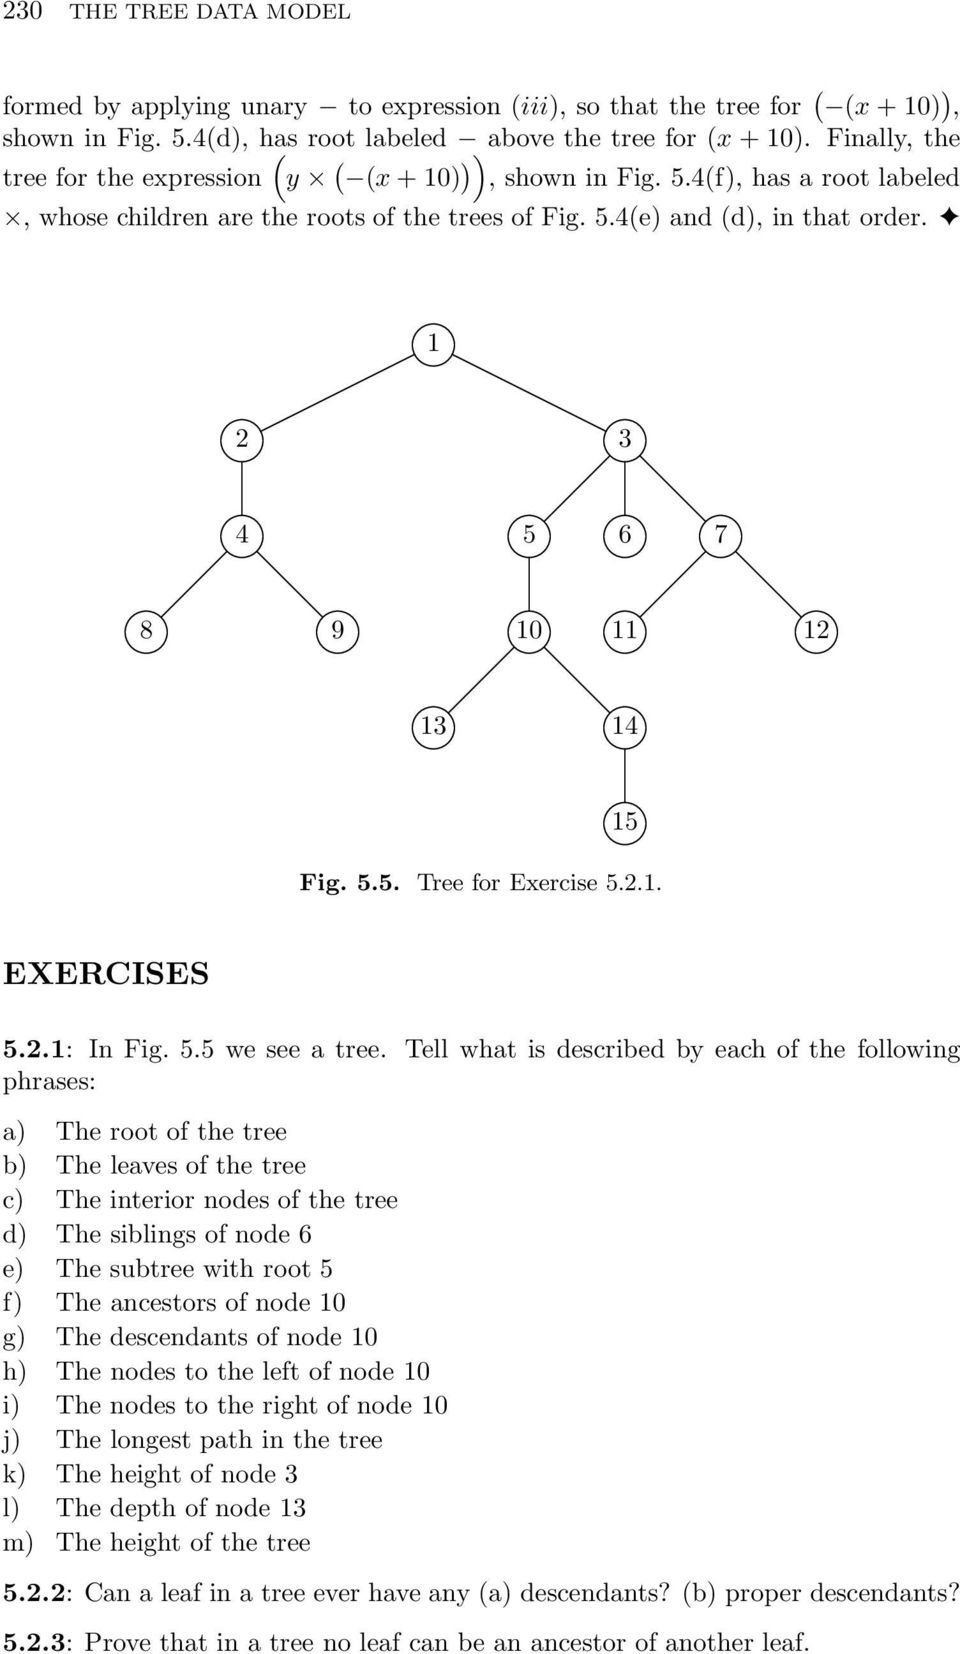 1 2 3 4 5 6 7 8 9 10 11 12 13 14 15 Fig. 5.5. Tree for Exercise 5.2.1. EXERCISES 5.2.1: In Fig. 5.5 we see a tree.